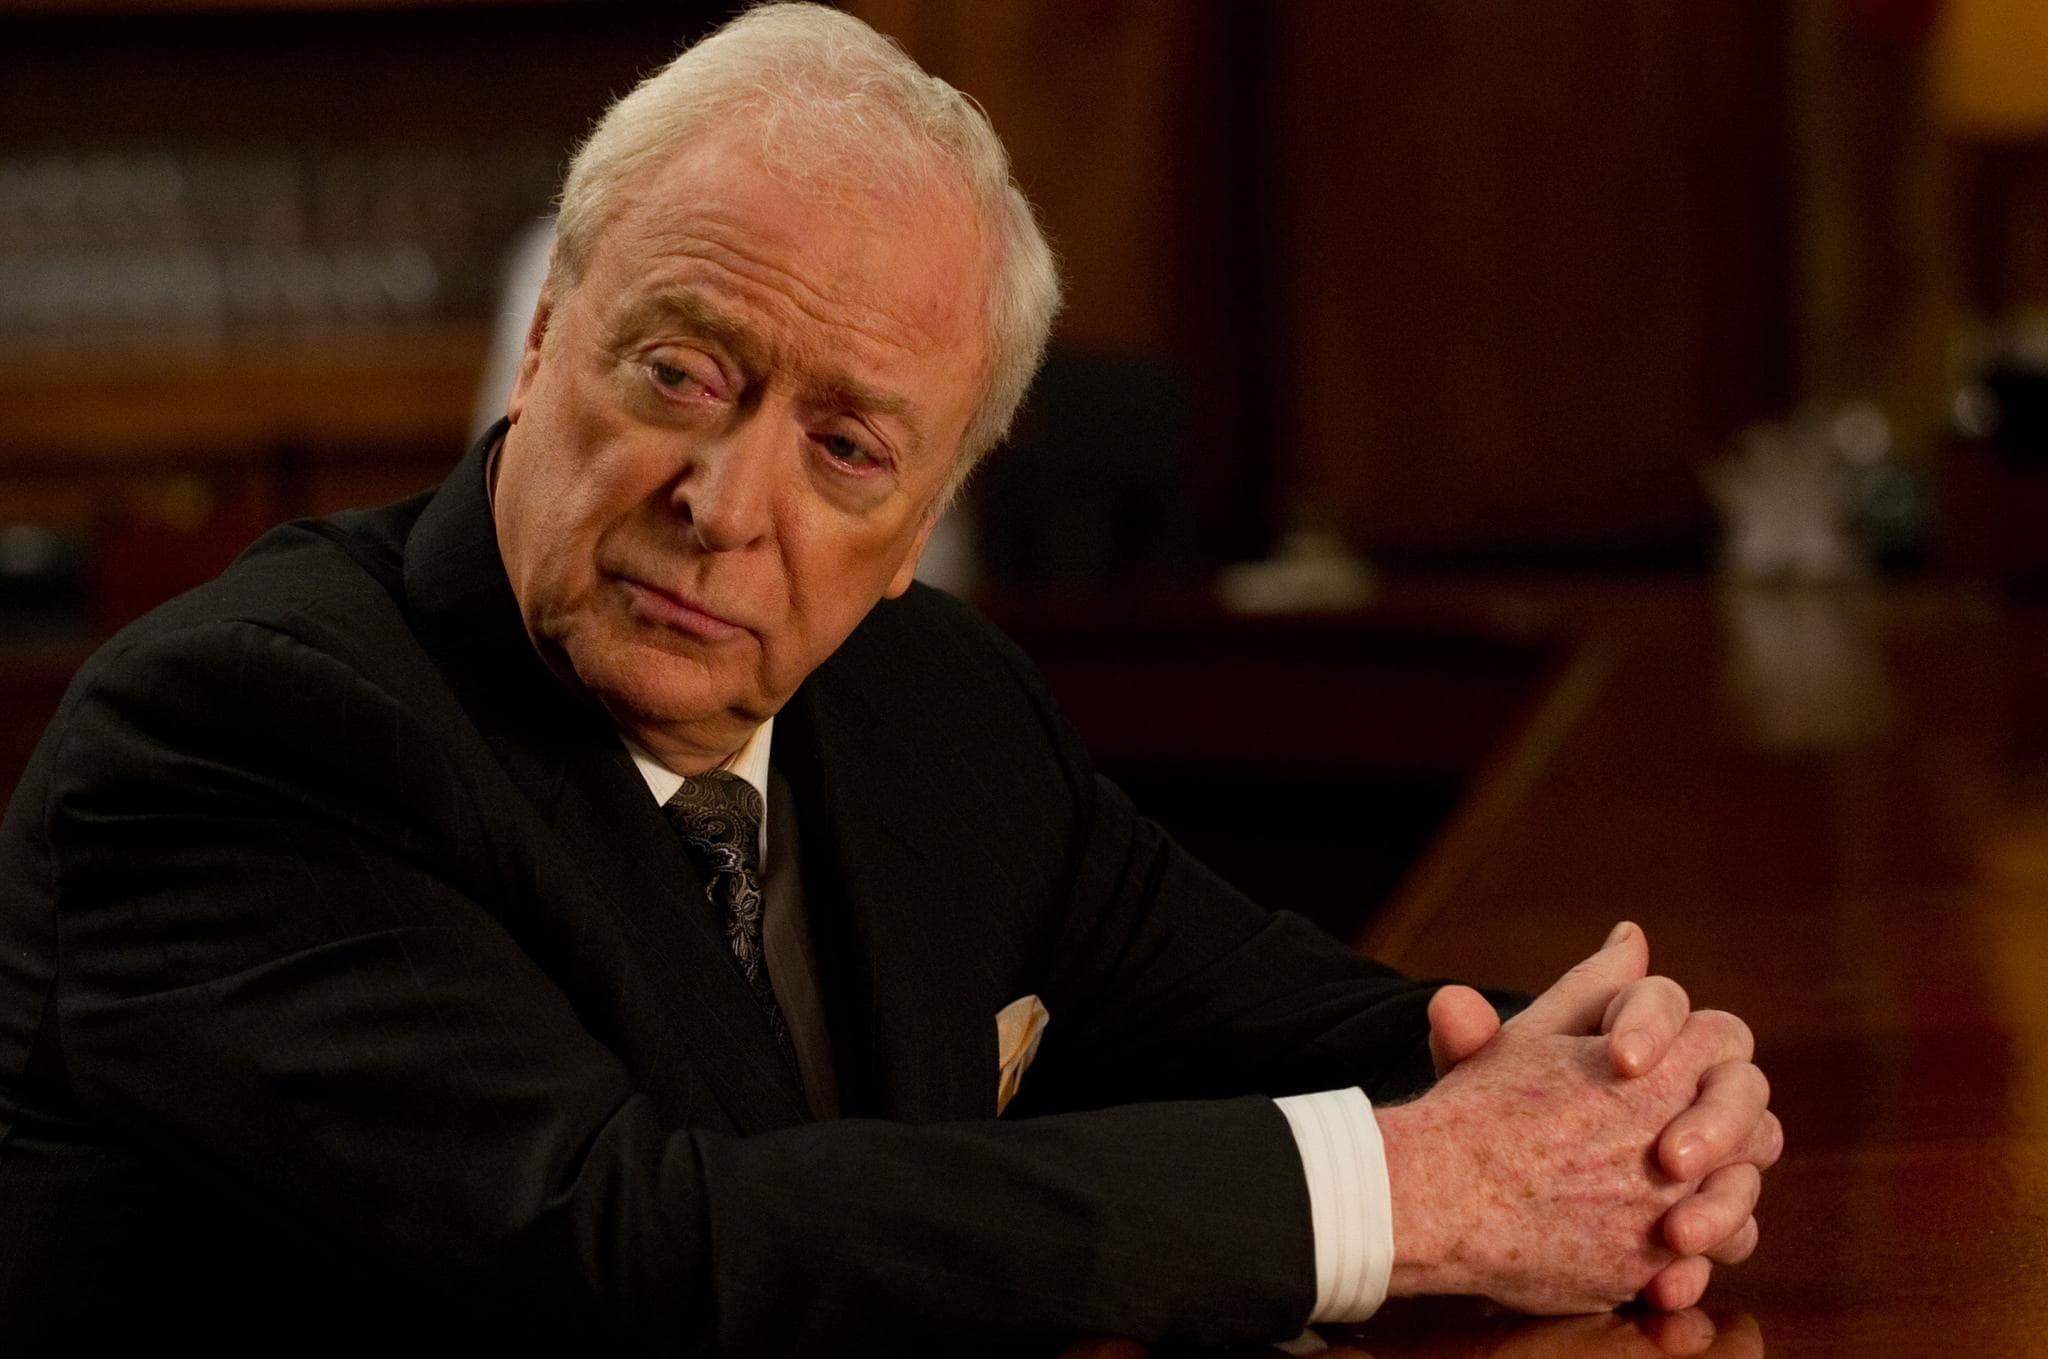 Michael Caine widescreen wallpapers